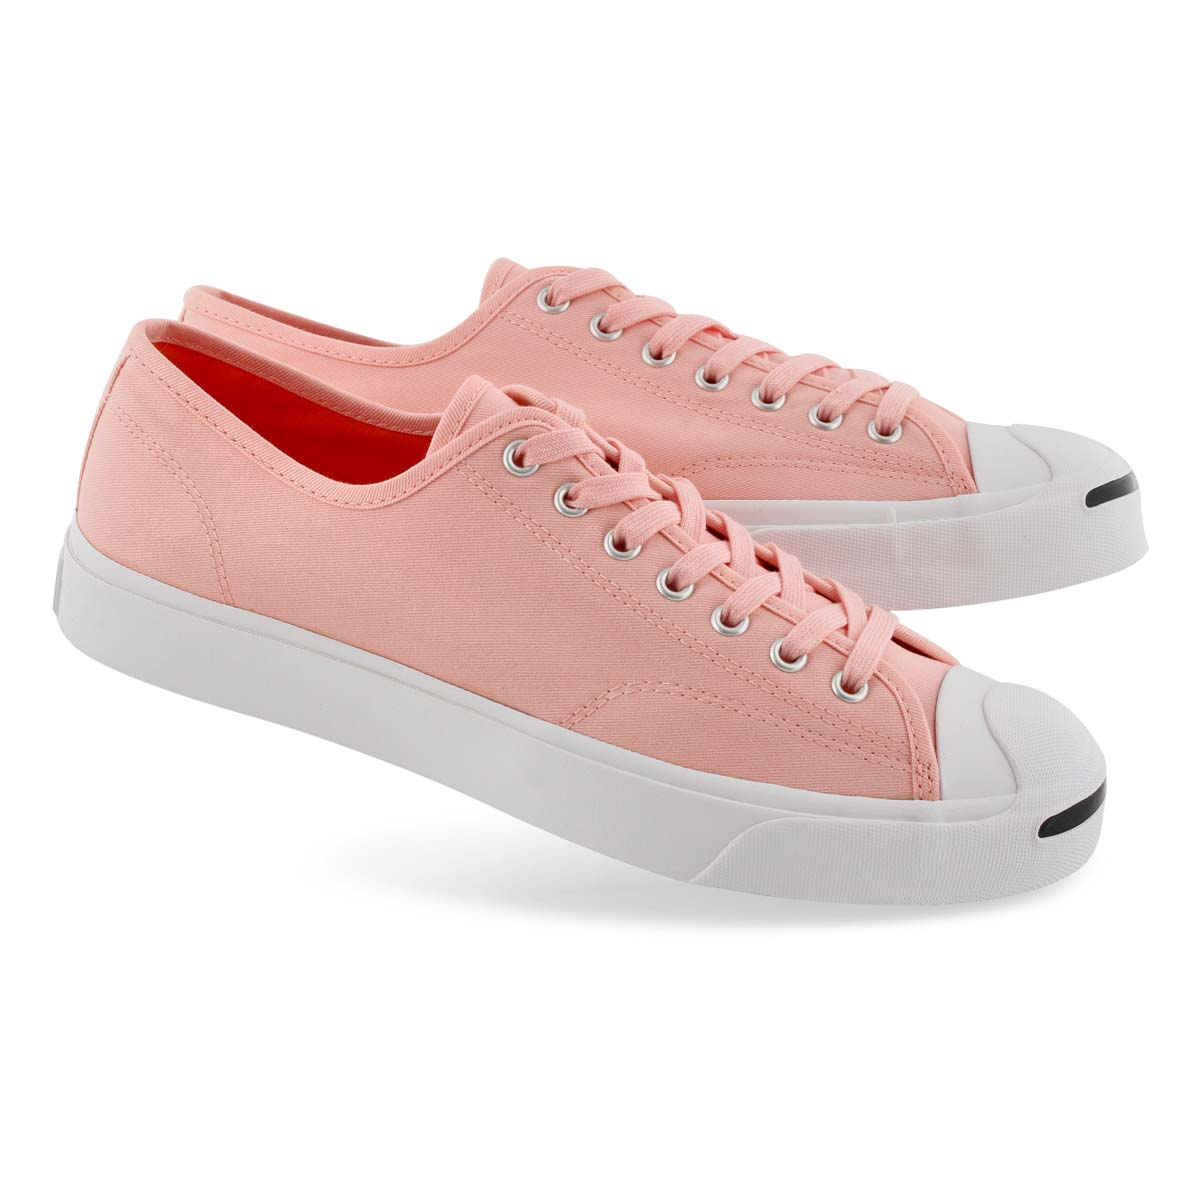 Mns Jack Purcell bleached coral snkr